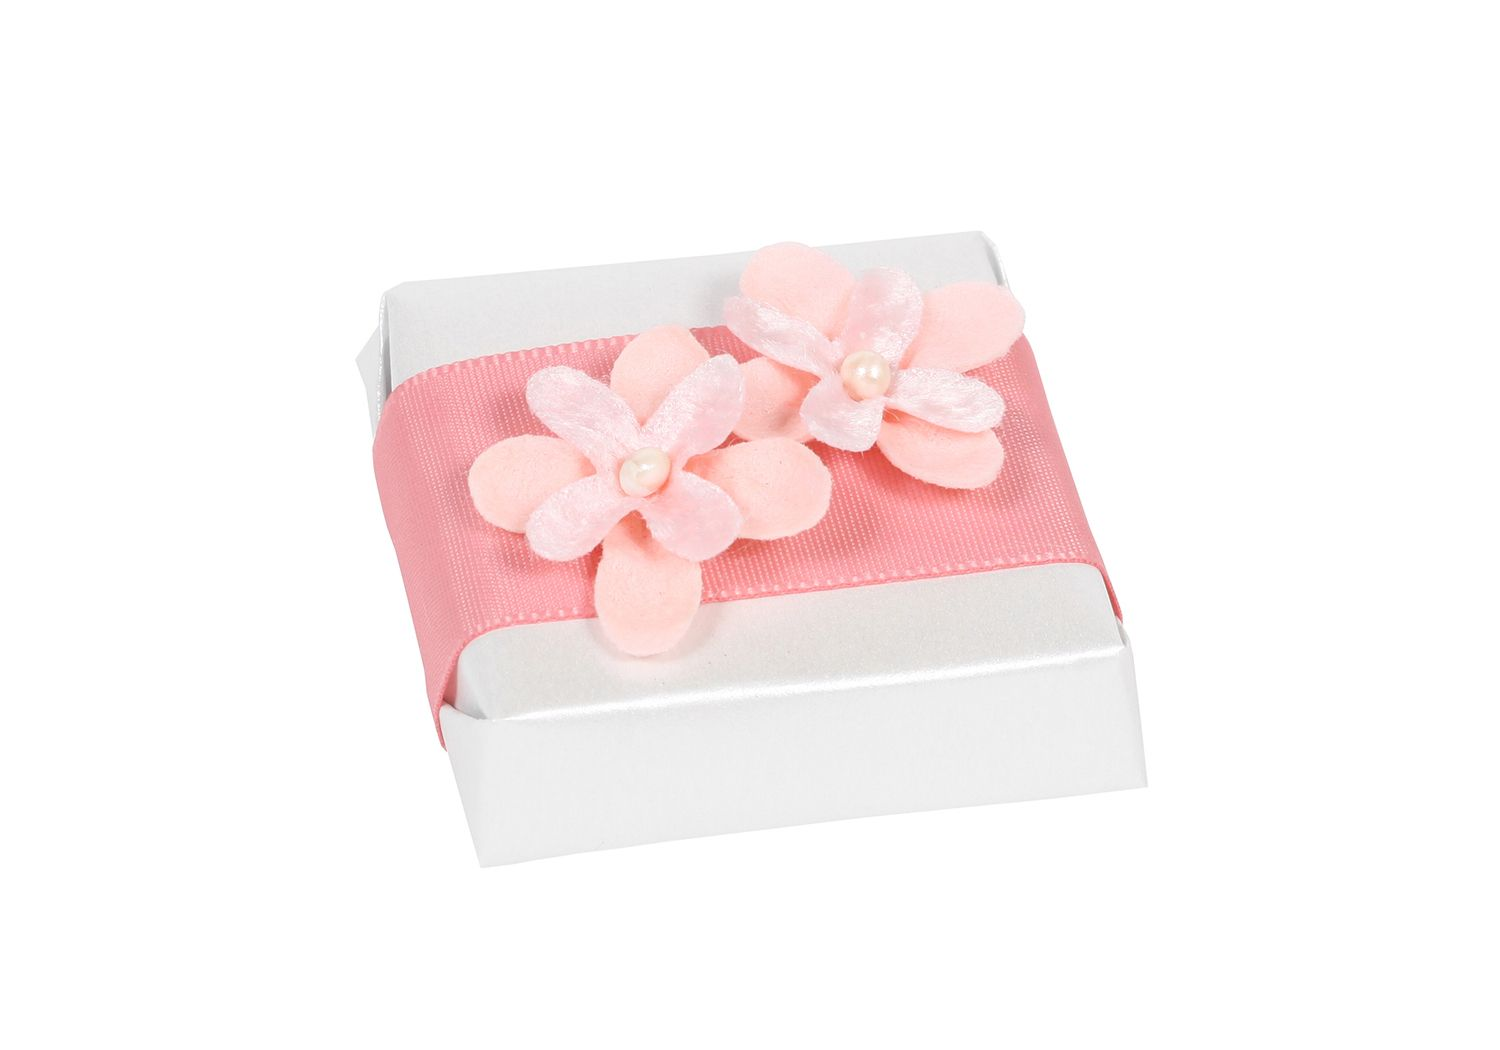 Patchi Serendipity Chocolate favor http://patchi.us/wedding-pink ...